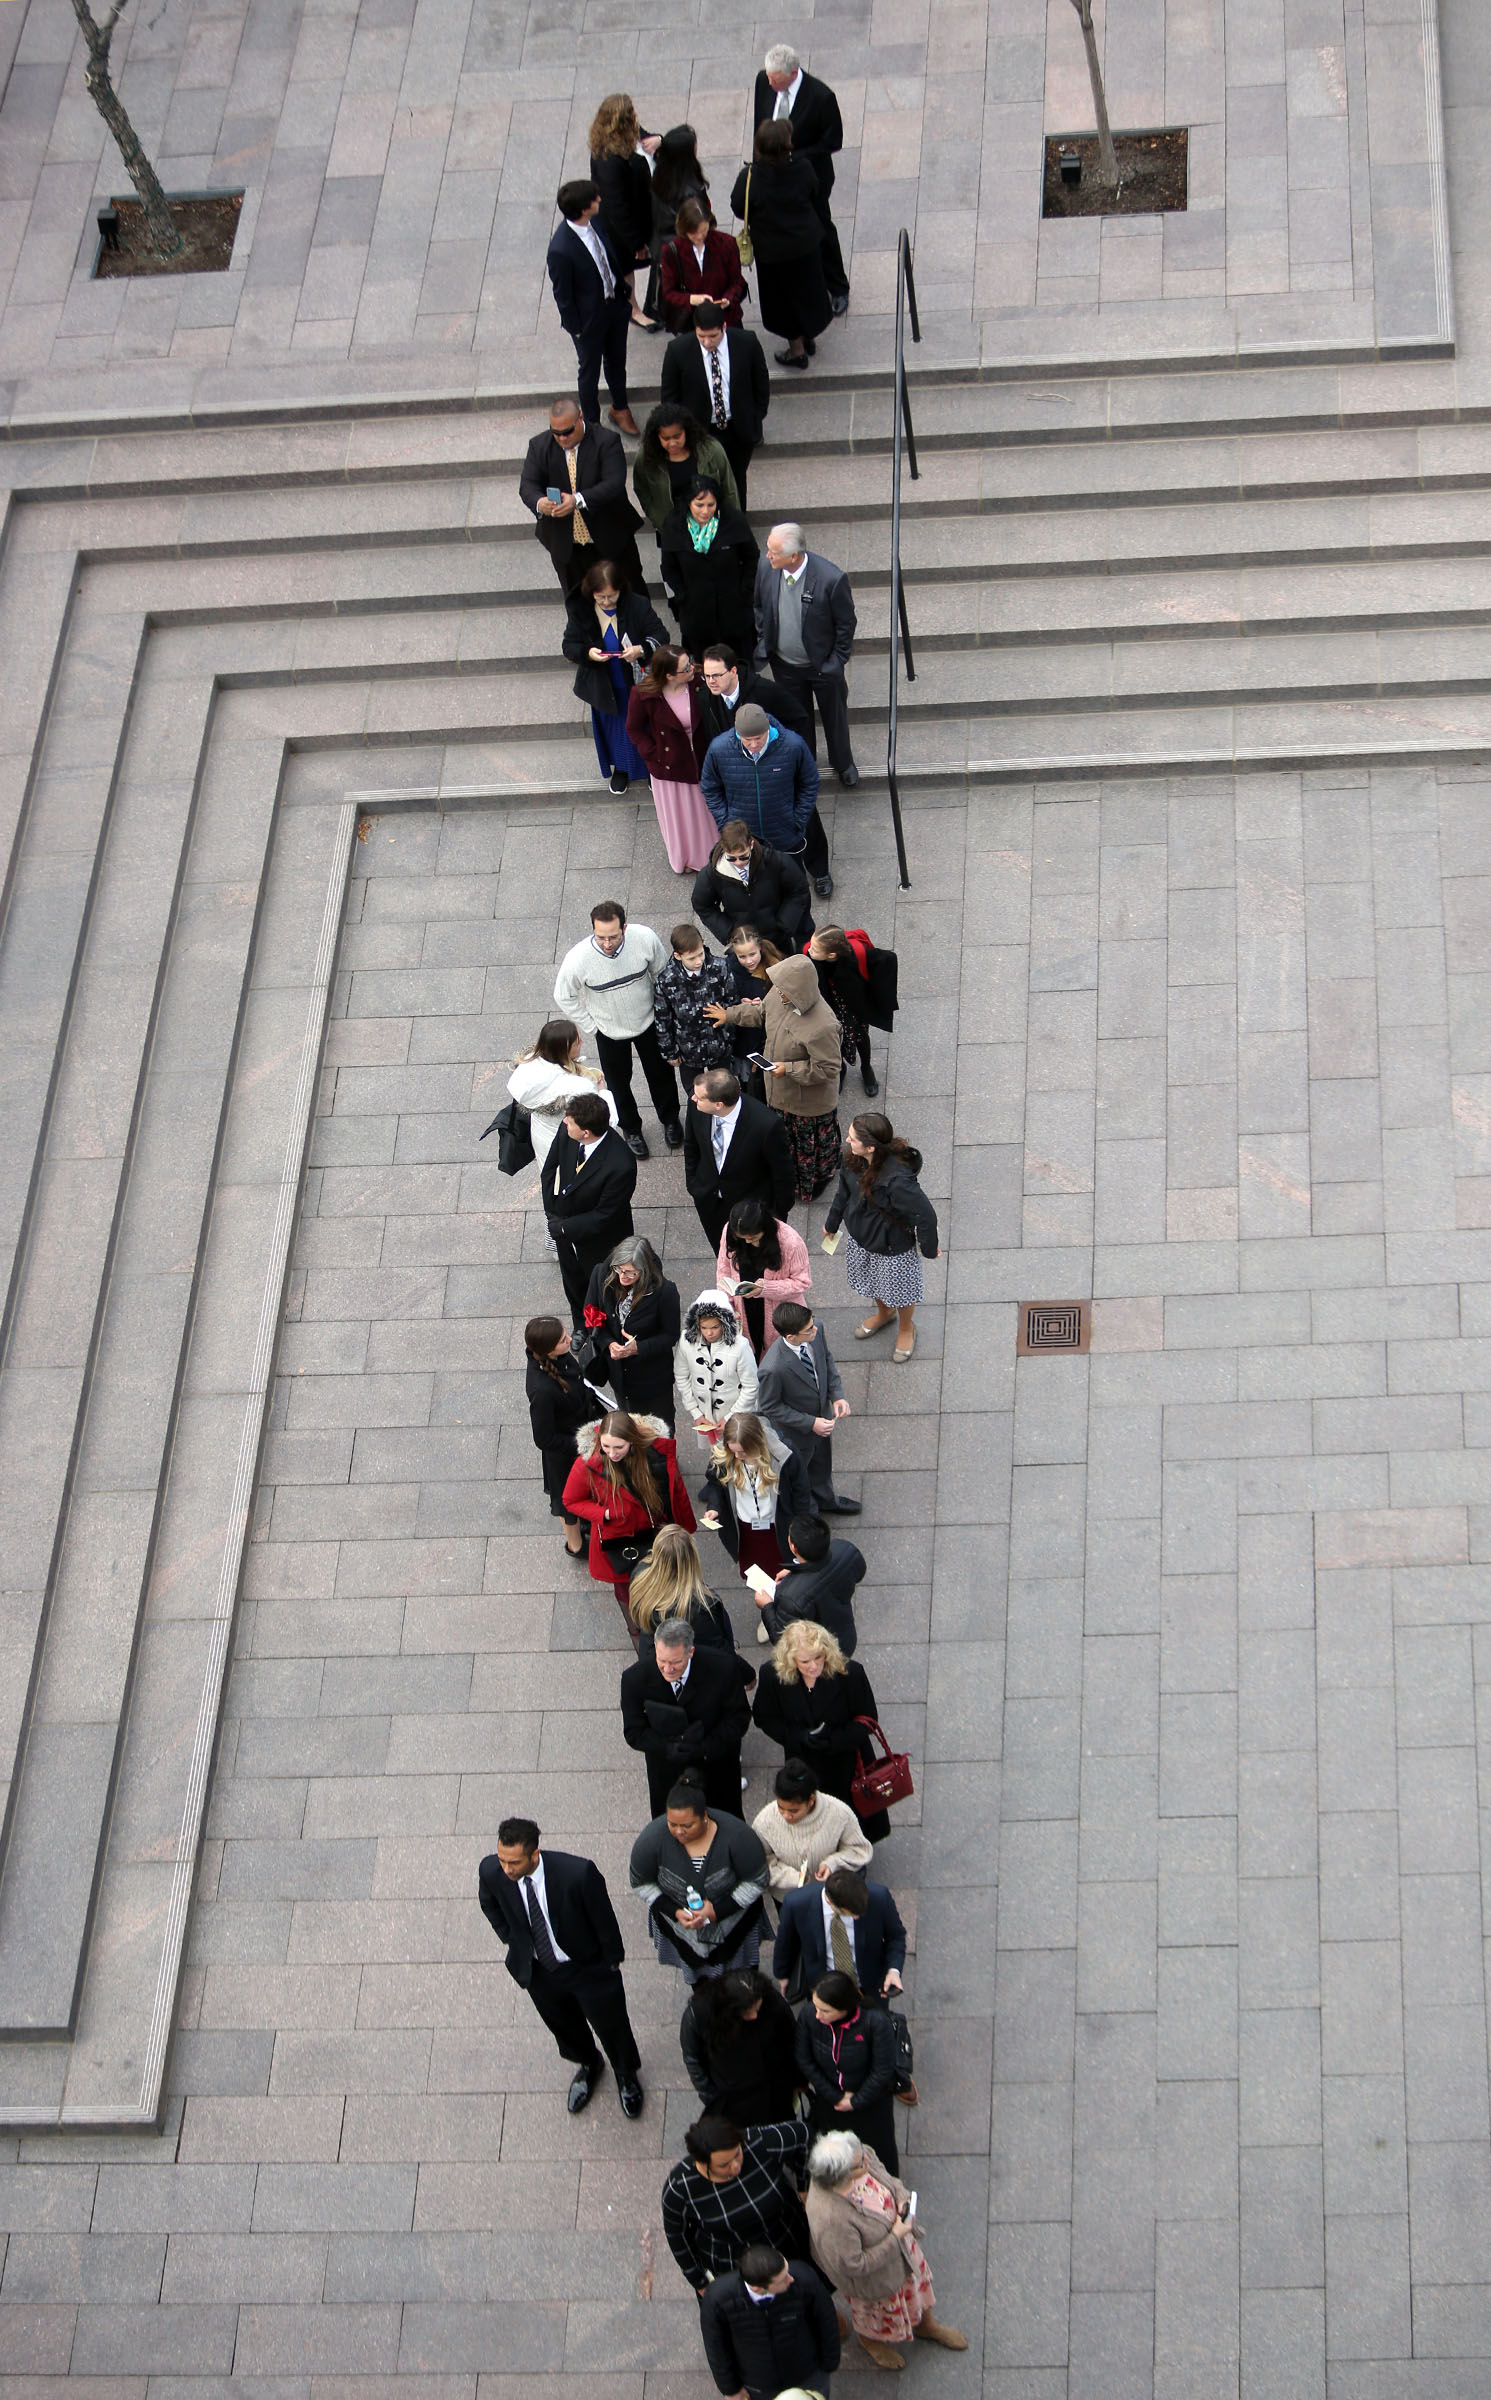 People line up for Church President Thomas S. Monson's funeral at the Conference Center in Salt Lake City on Friday, Jan. 12, 2018.